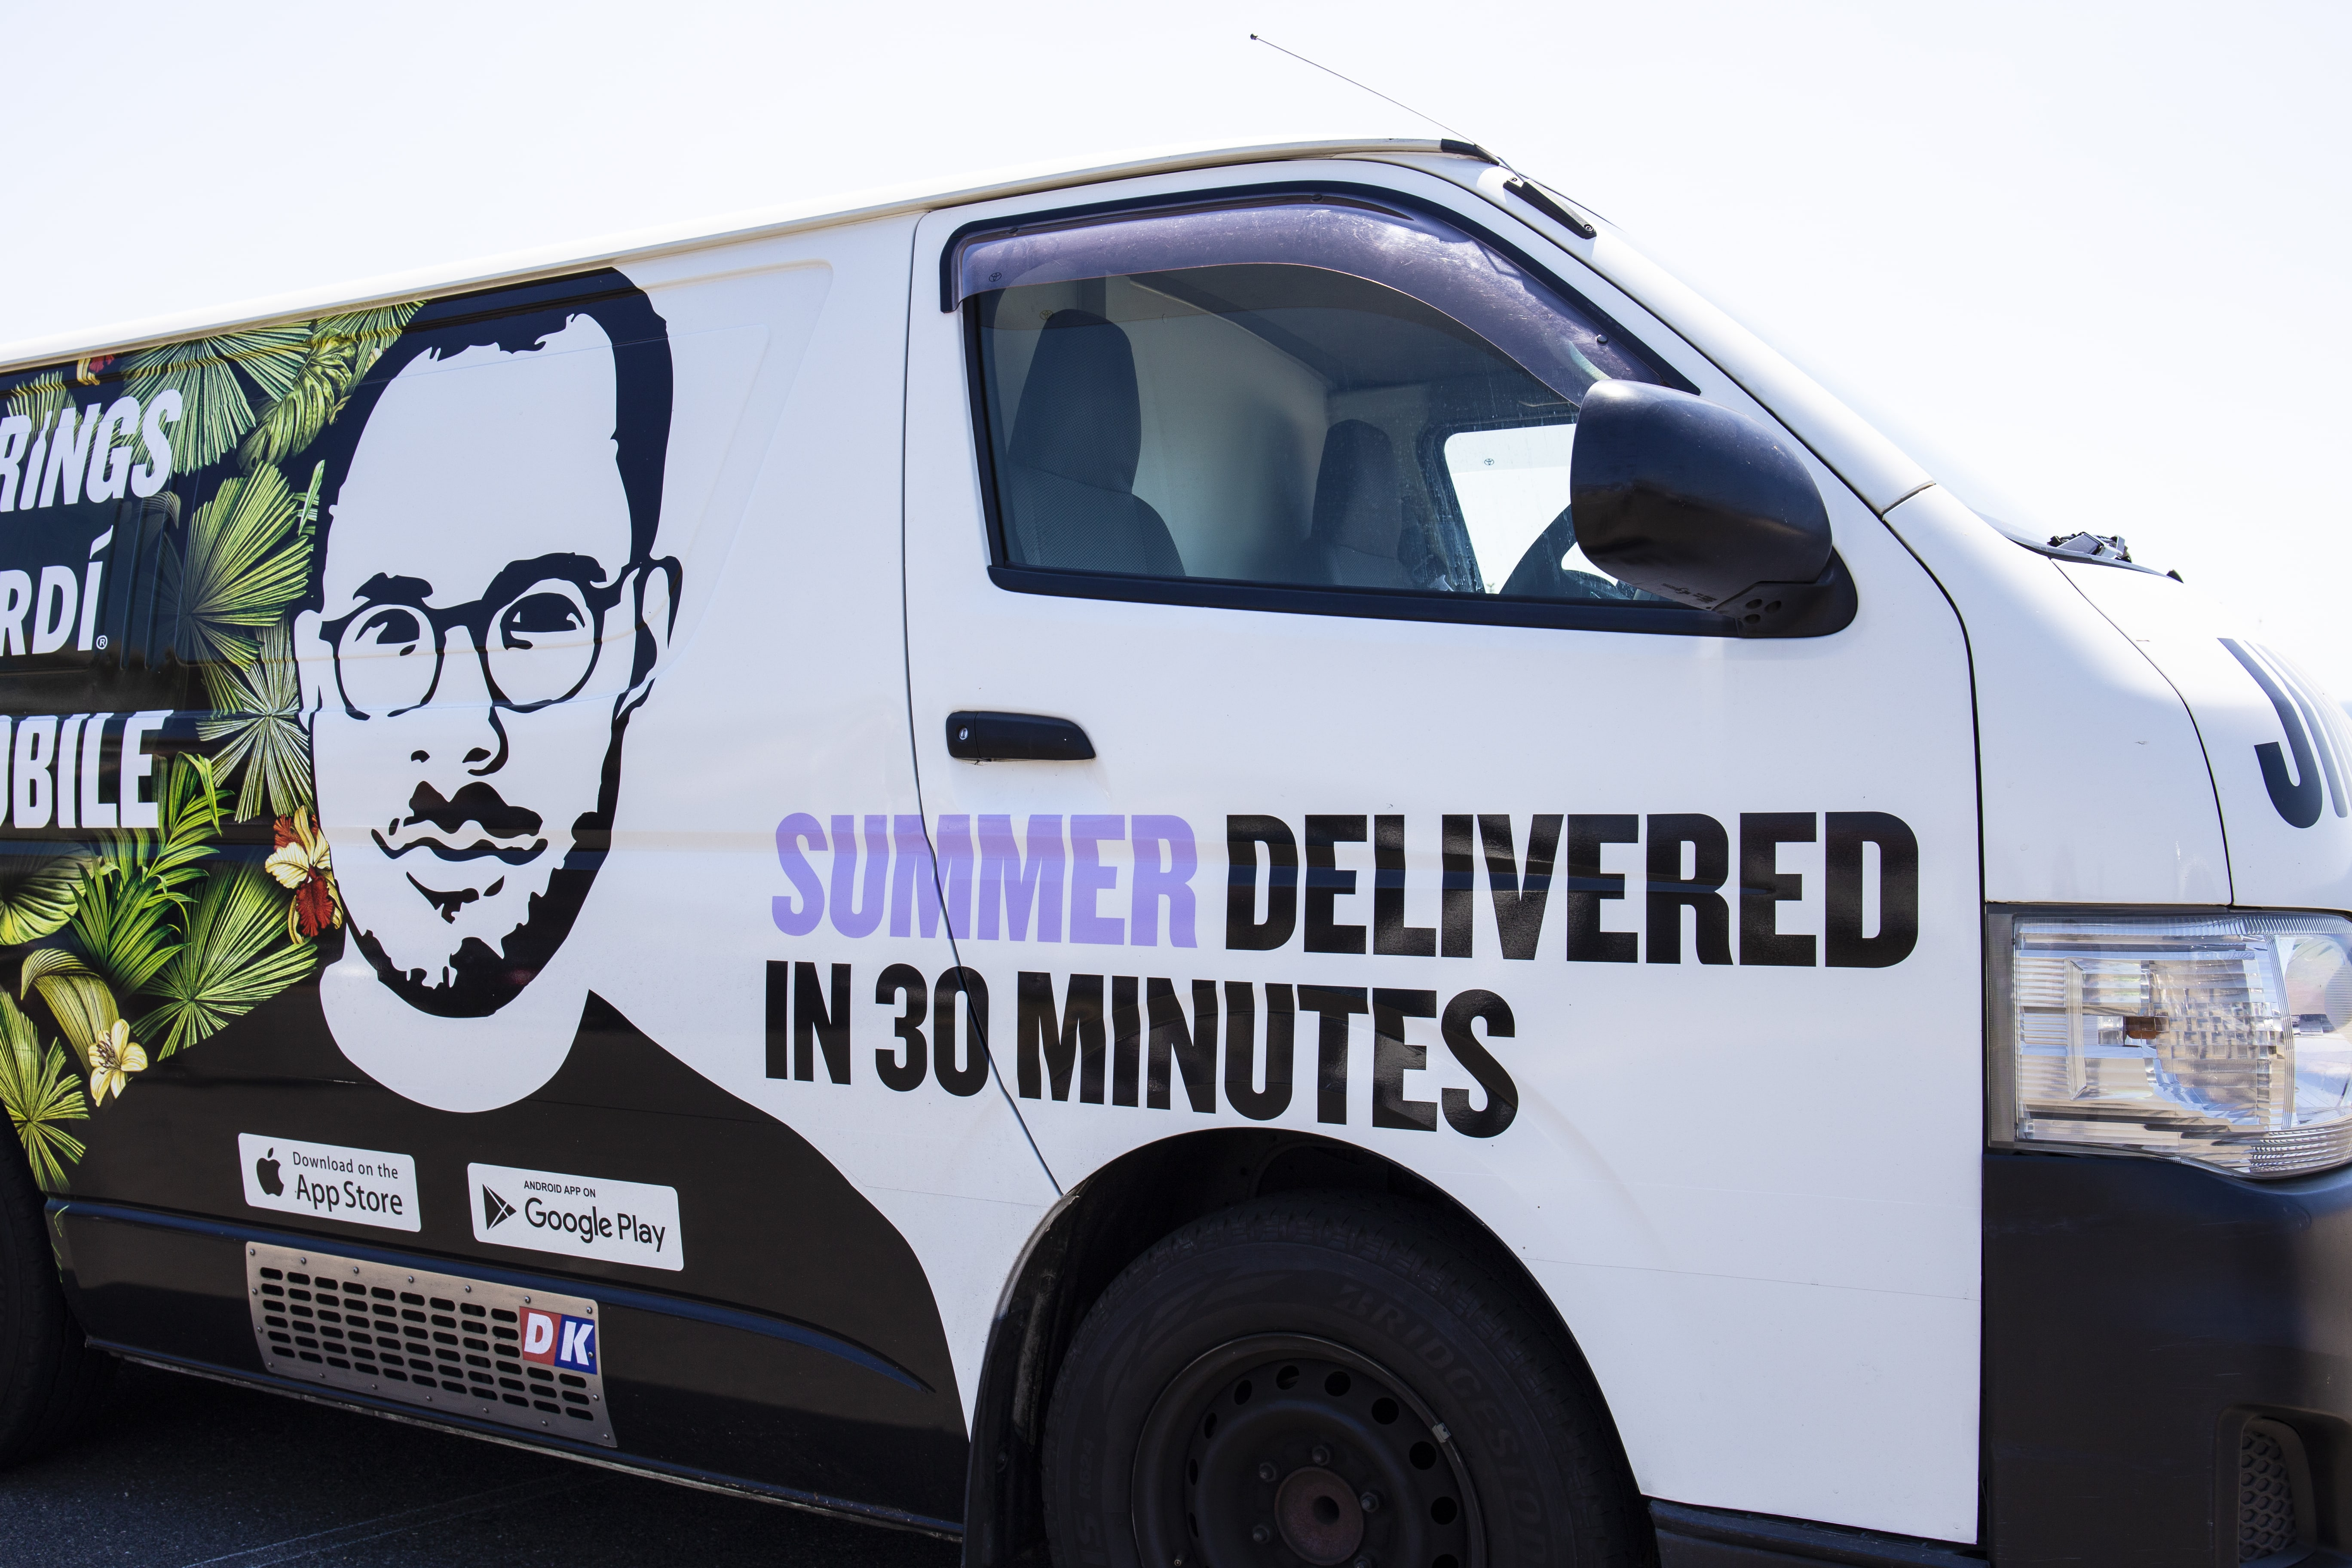 Bacardi Teams Up With Undeniably Convenient Jimmy Brings To Deliver Summer In 30 Minutes.